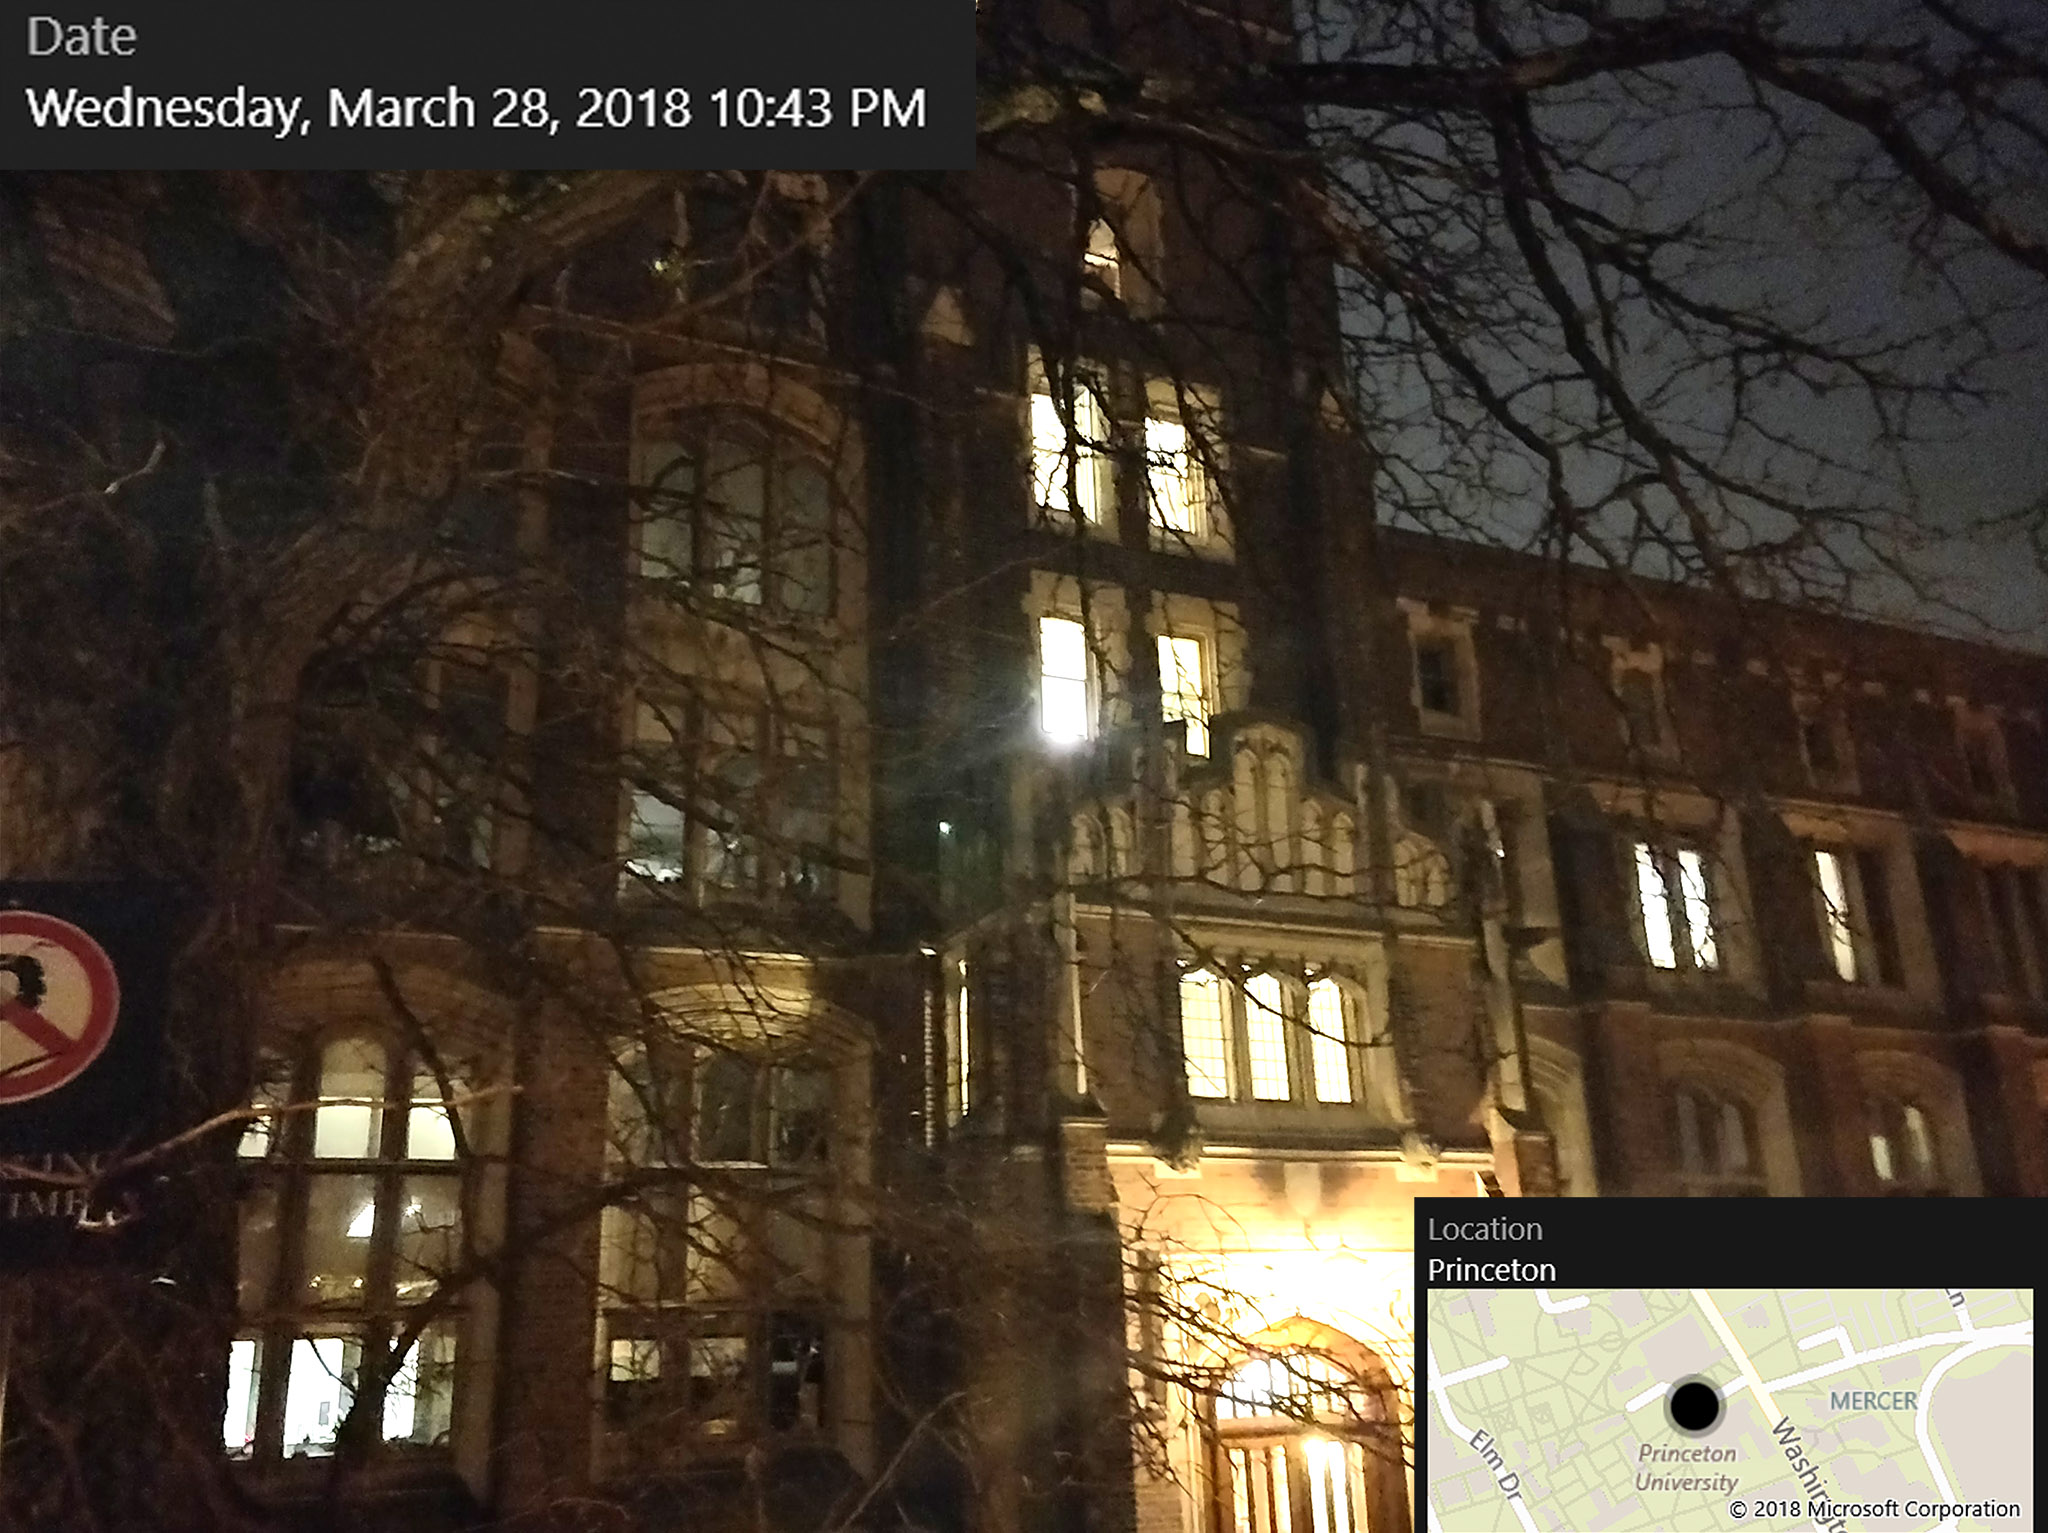 Ben and Mohak made excellent time to Princeton and arrived at 10:43pm, just 13 minutes behind schedule. This picture shows Guyot Hall, which houses Princeton's geosciences department and exhibits various writings and artifacts originally belonging to Benjamin Franklin and others.